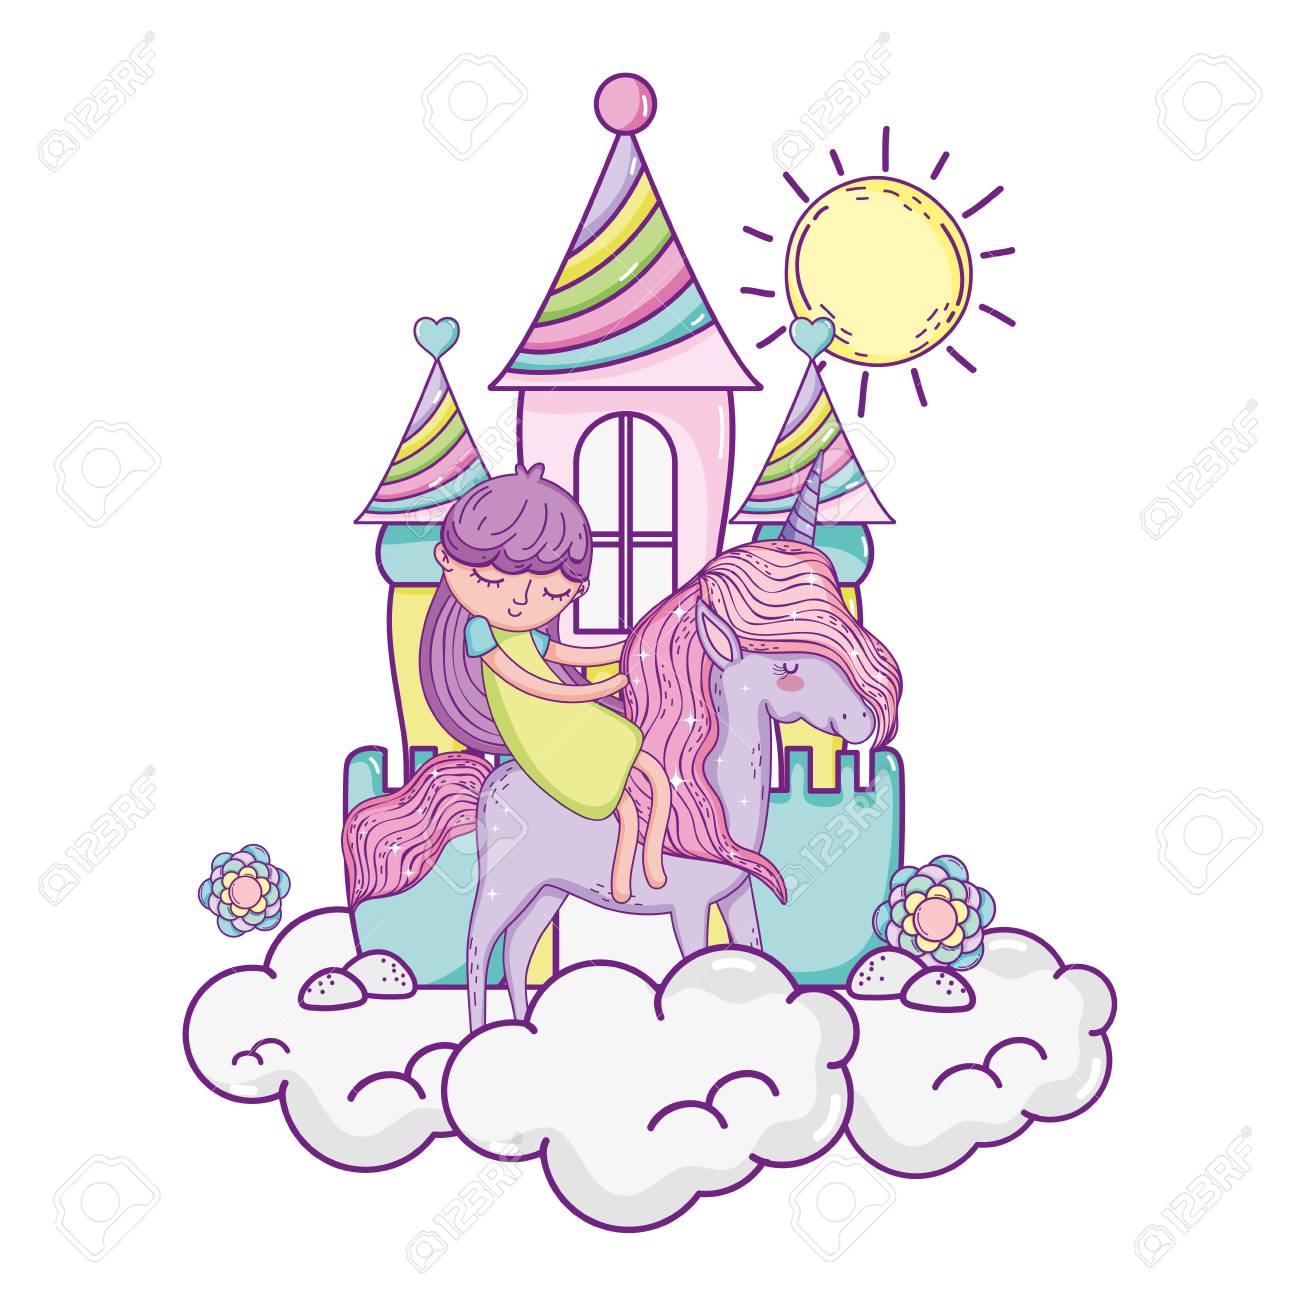 little unicorn and princess in the clouds with castle - 116096522